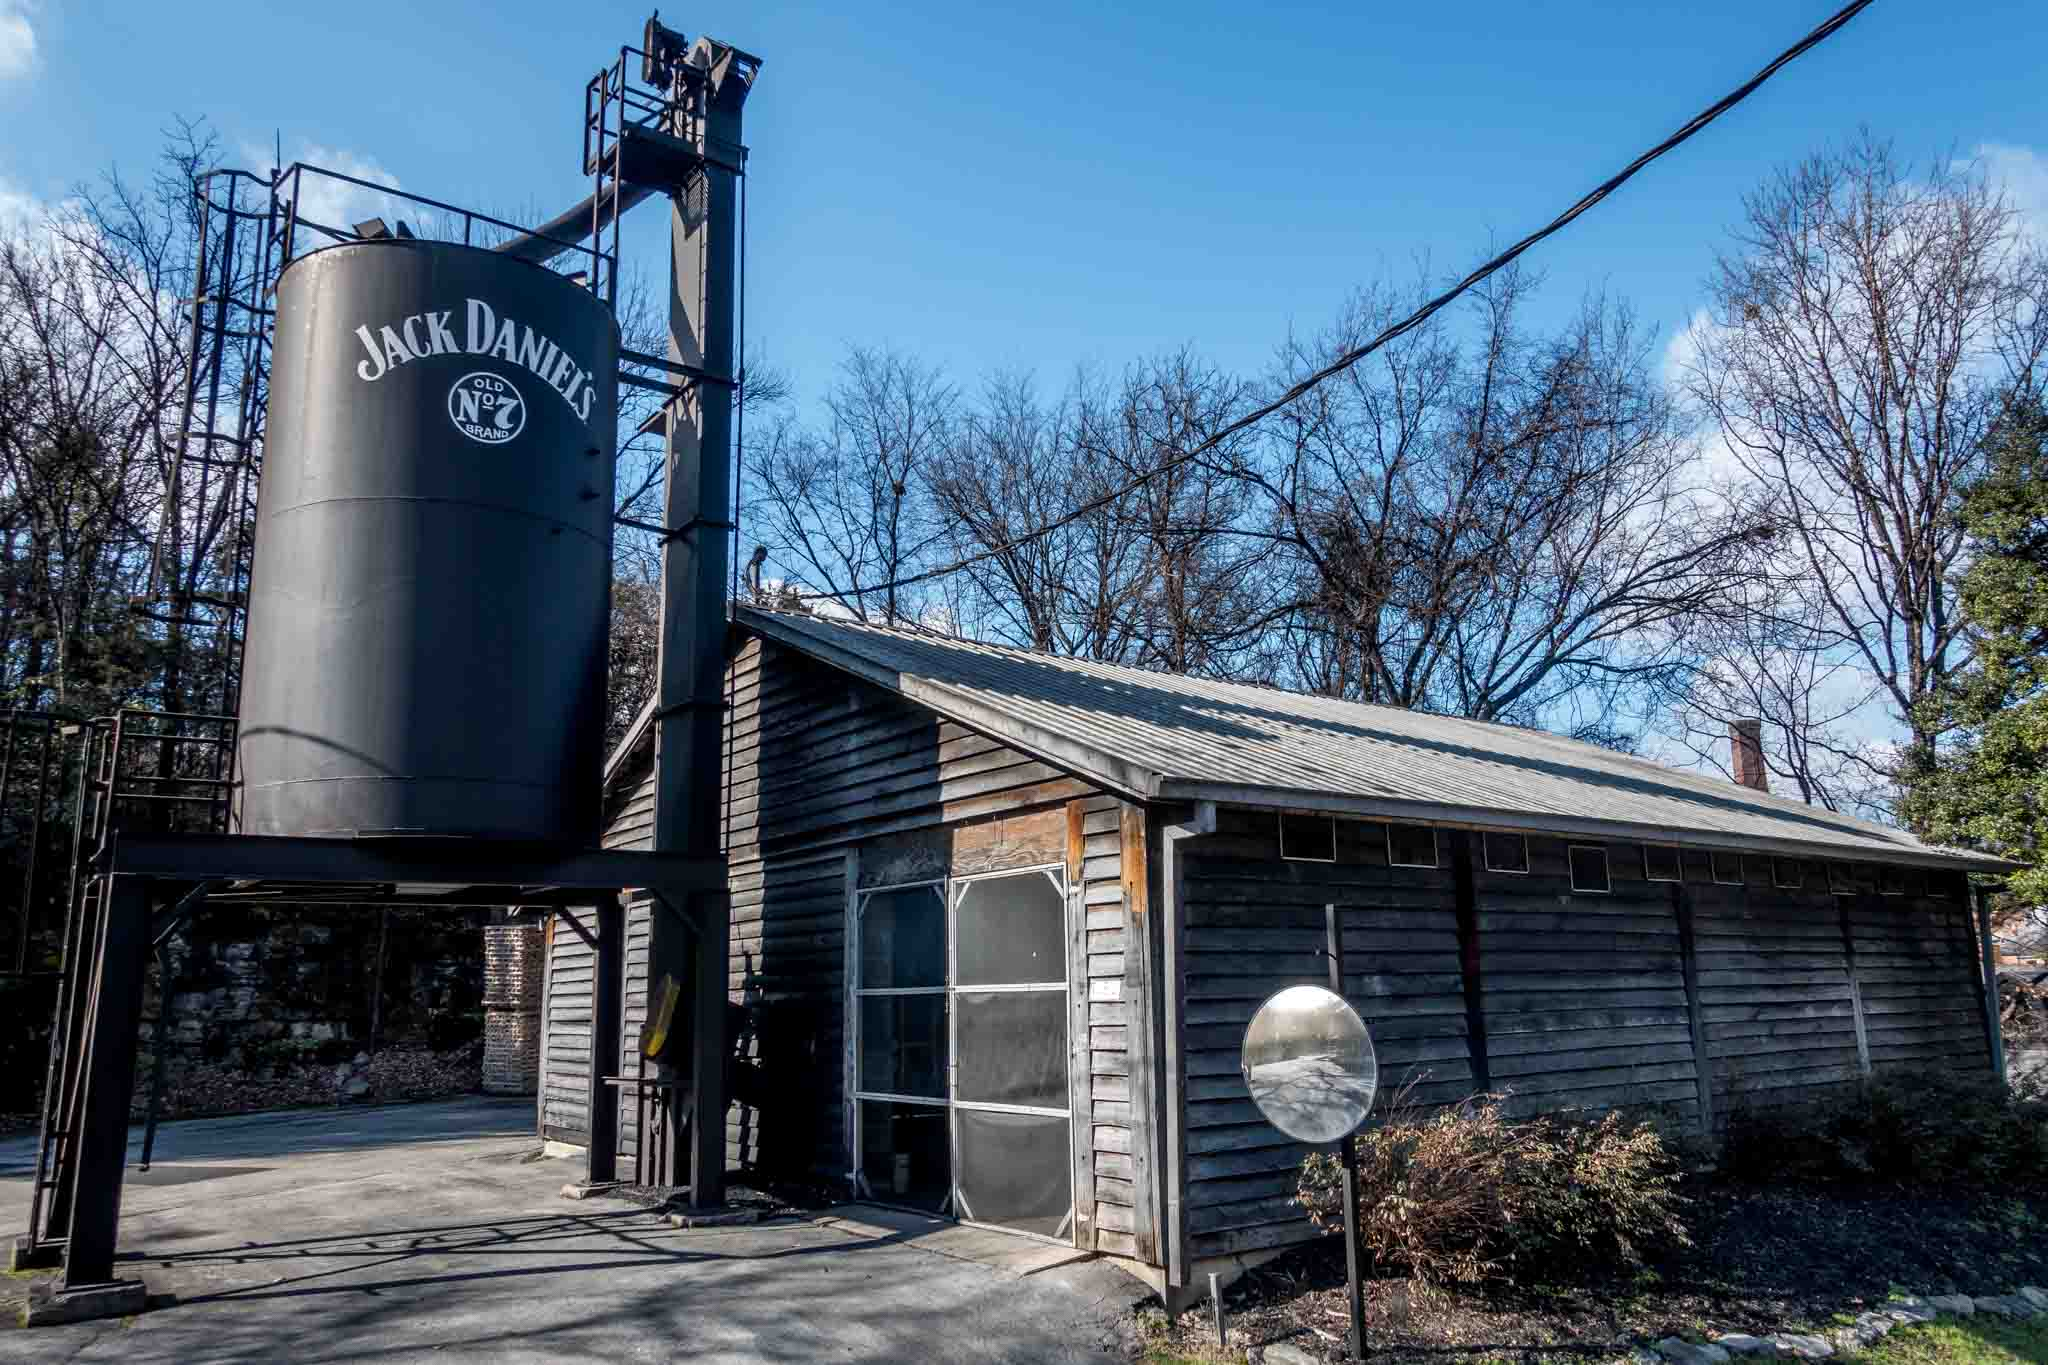 One of the buildings at the massive Jack Daniels distillery in Lynchburg TN